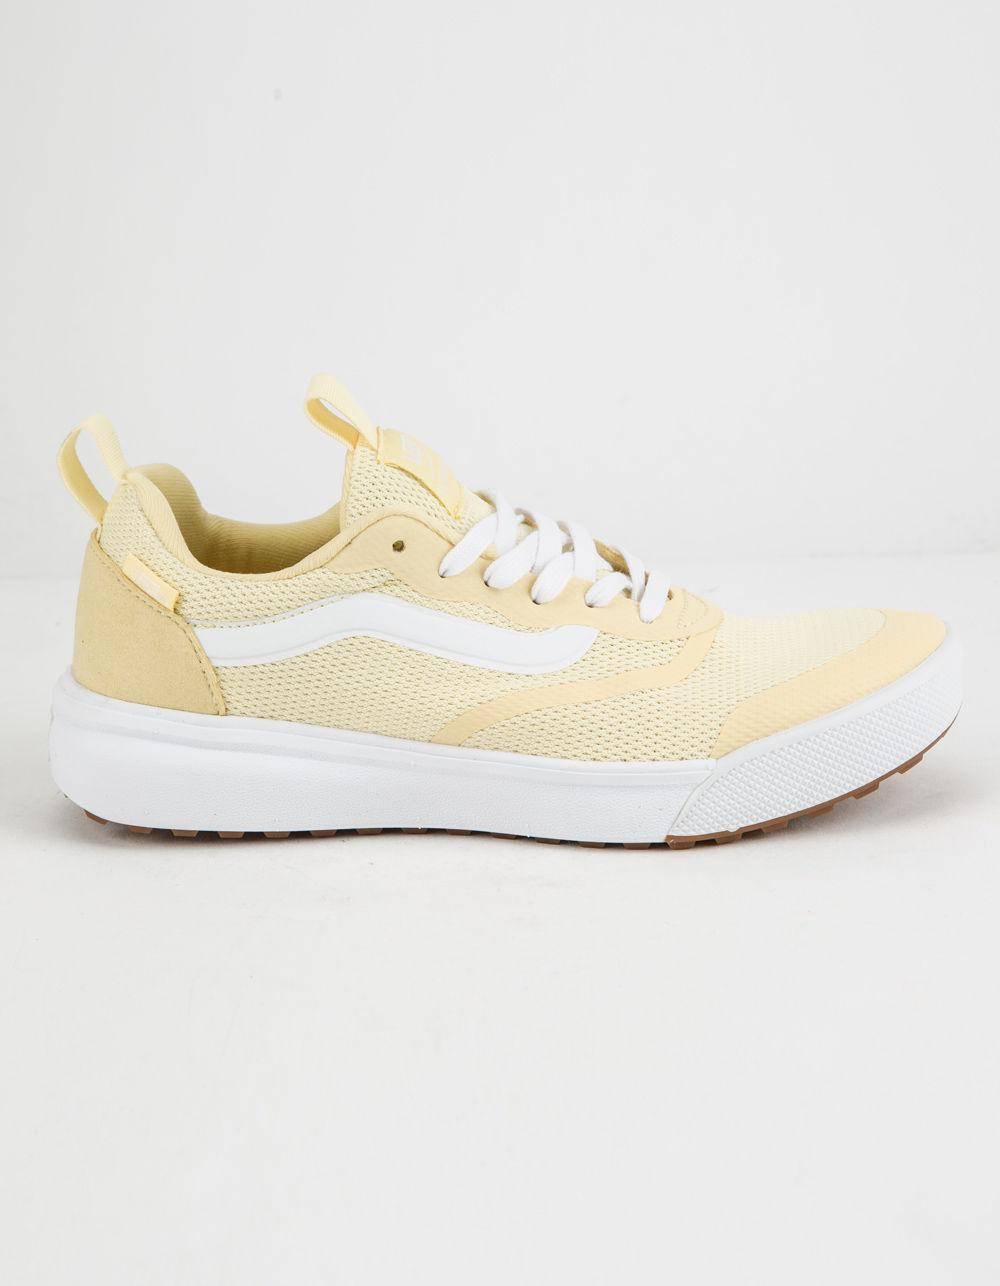 vans woman shoes yellow